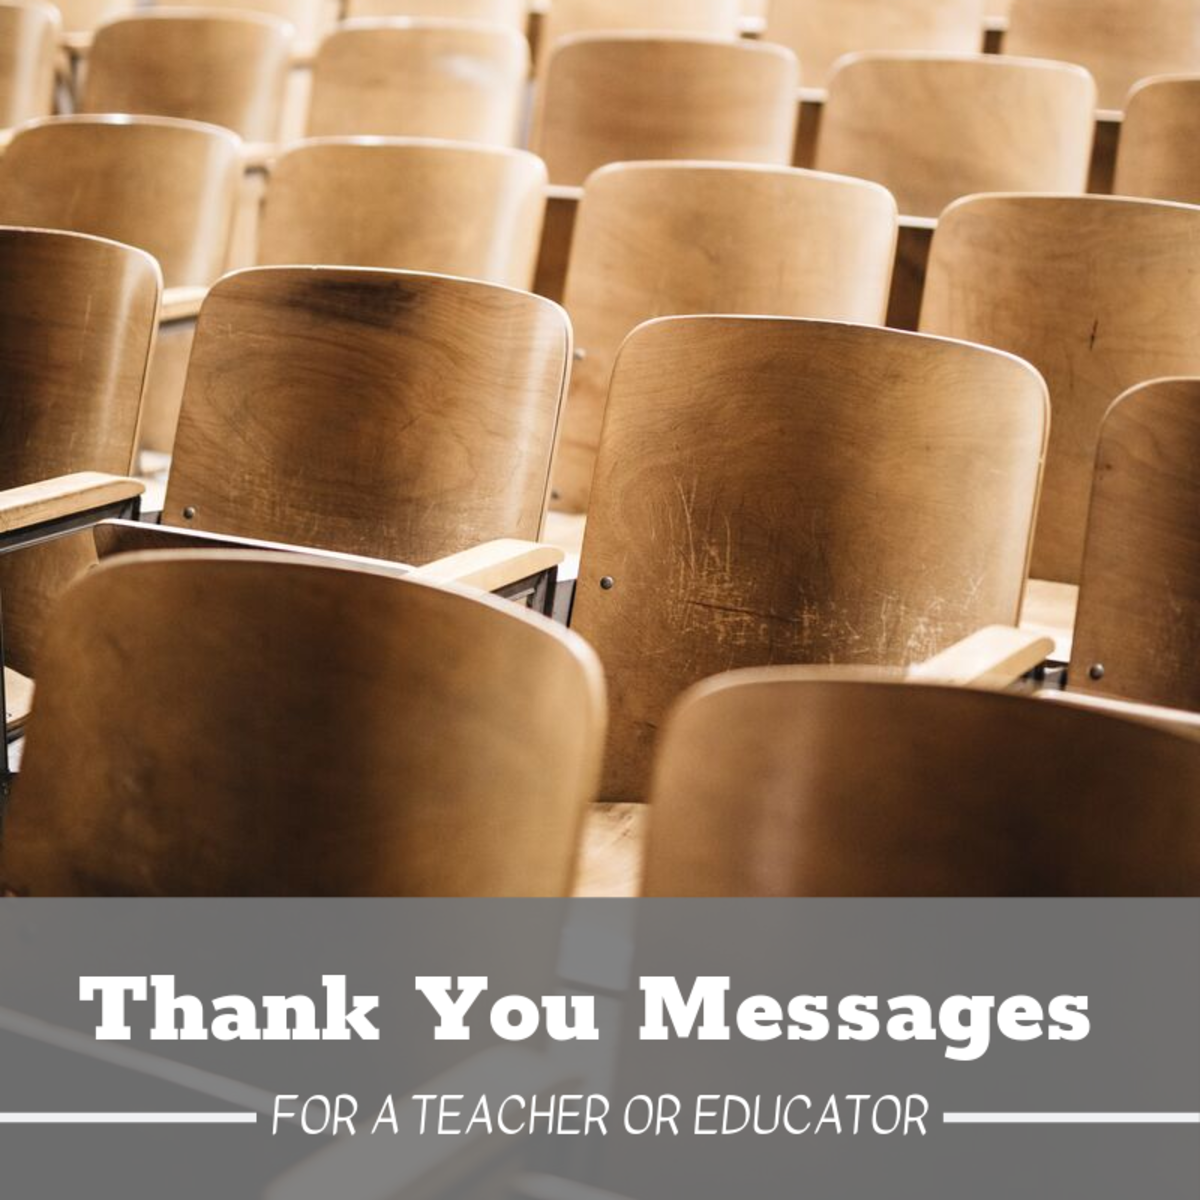 Teachers are some of the most under-appreciated figures in our lives. Let's thank them for helping shape us into the individuals we've become.